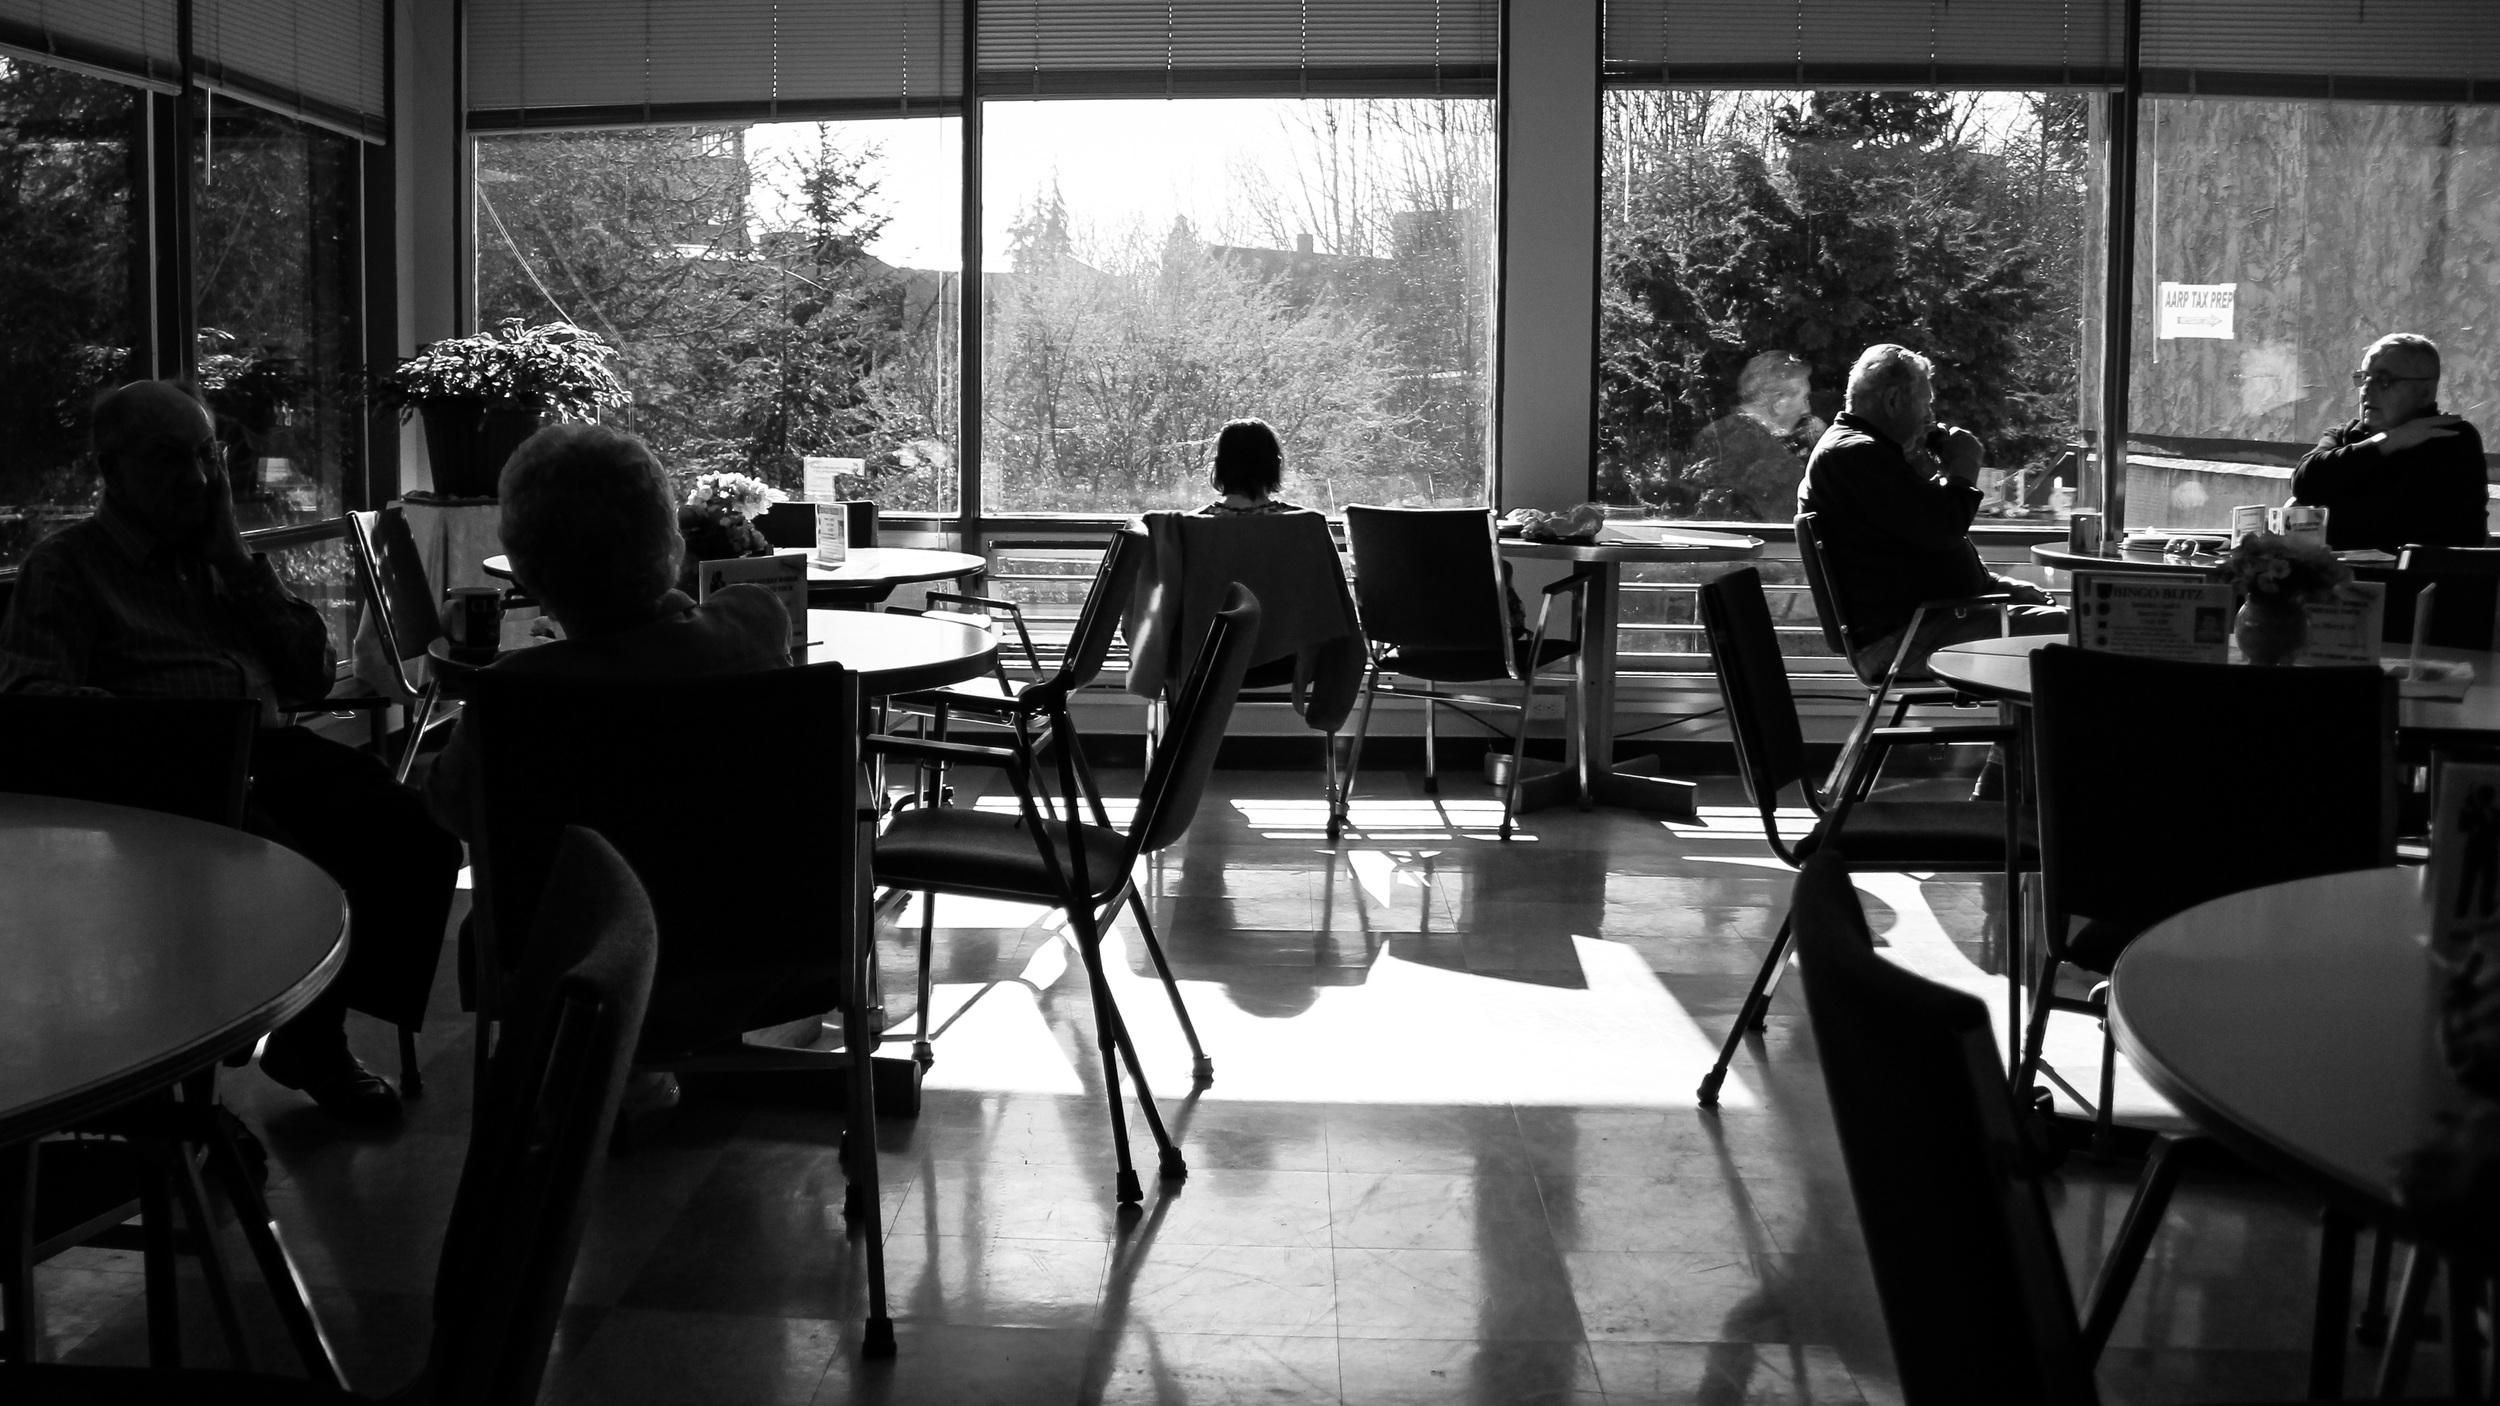 Members of the Bellingham Senior Activity Center enjoy a sunny afternoon in March after a long few months of rain. Bob Souders and his wife, left, sit and chat after playing a few rounds of pool. The center is open Monday through Saturday and offers a wide spectrum of classes and activities for senior members. Many come regularly for classes and many just for the company of others.